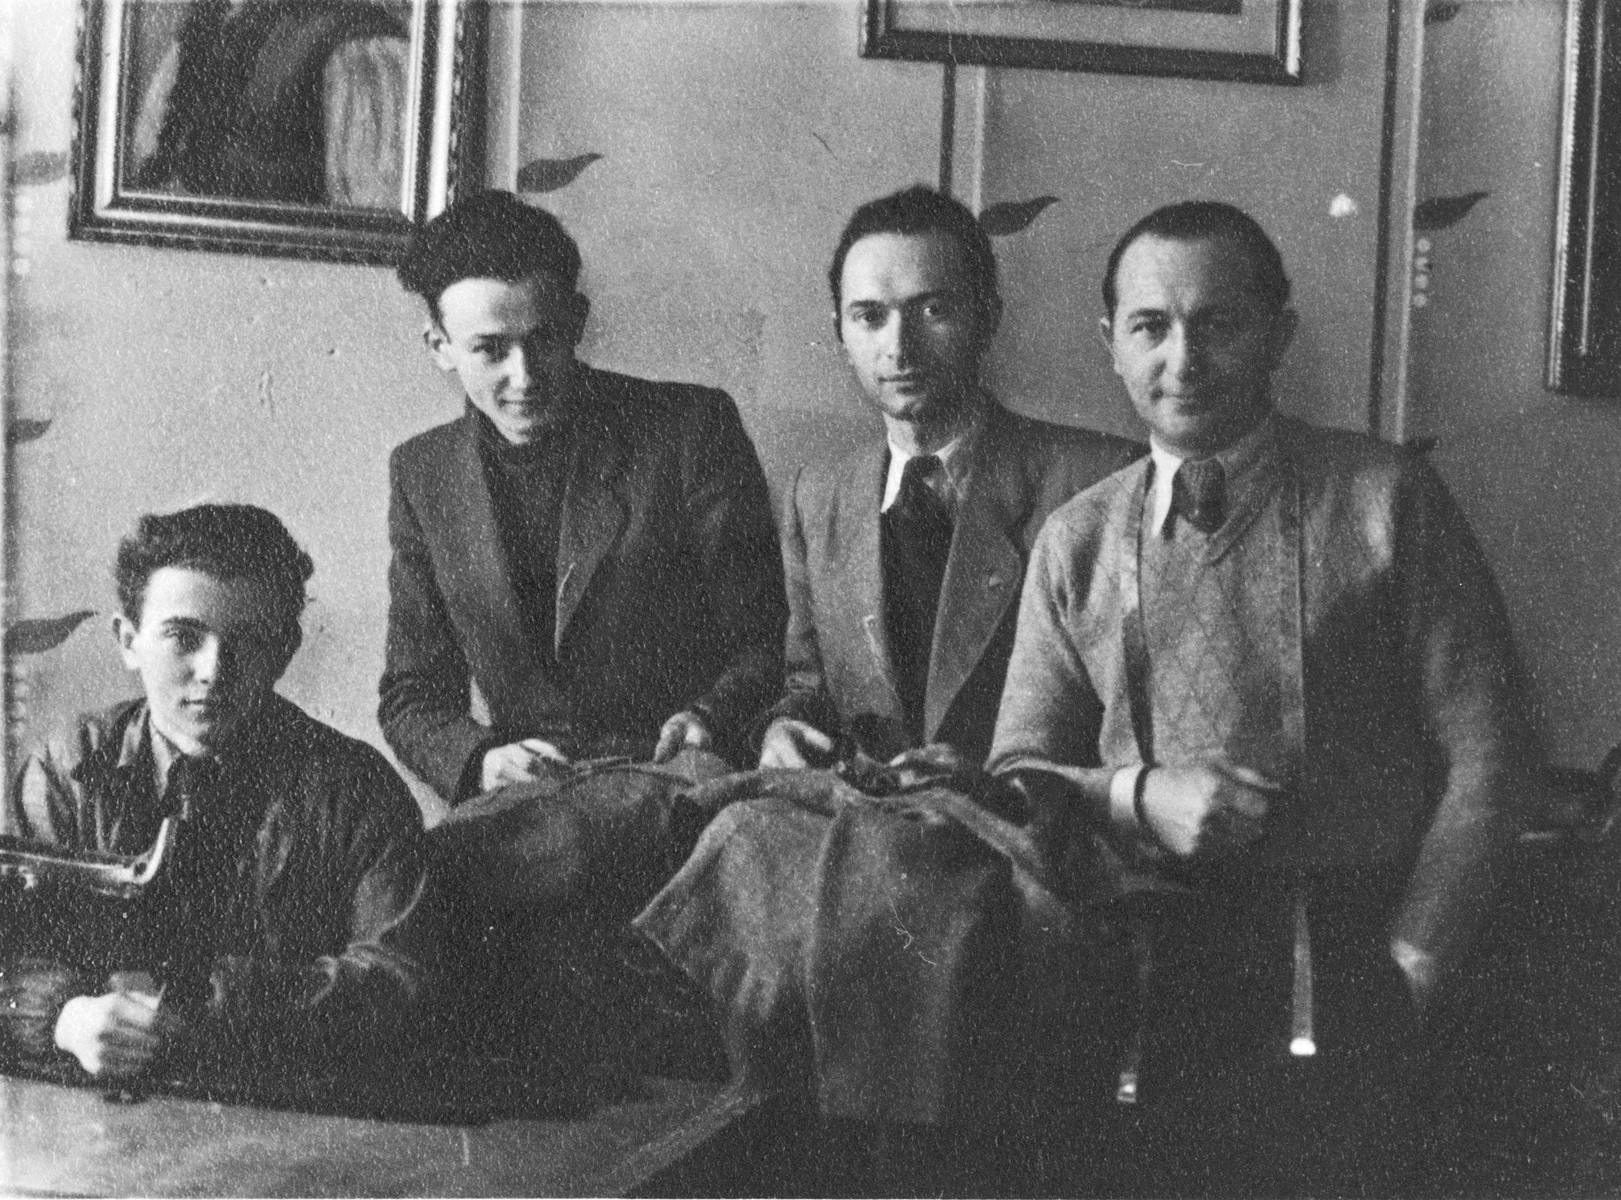 Employees work in the Julius Madritsch clothing workshop in the Krakow ghetto.  Henryk Eichenholz is on the far right and his son Bronek is on the left.